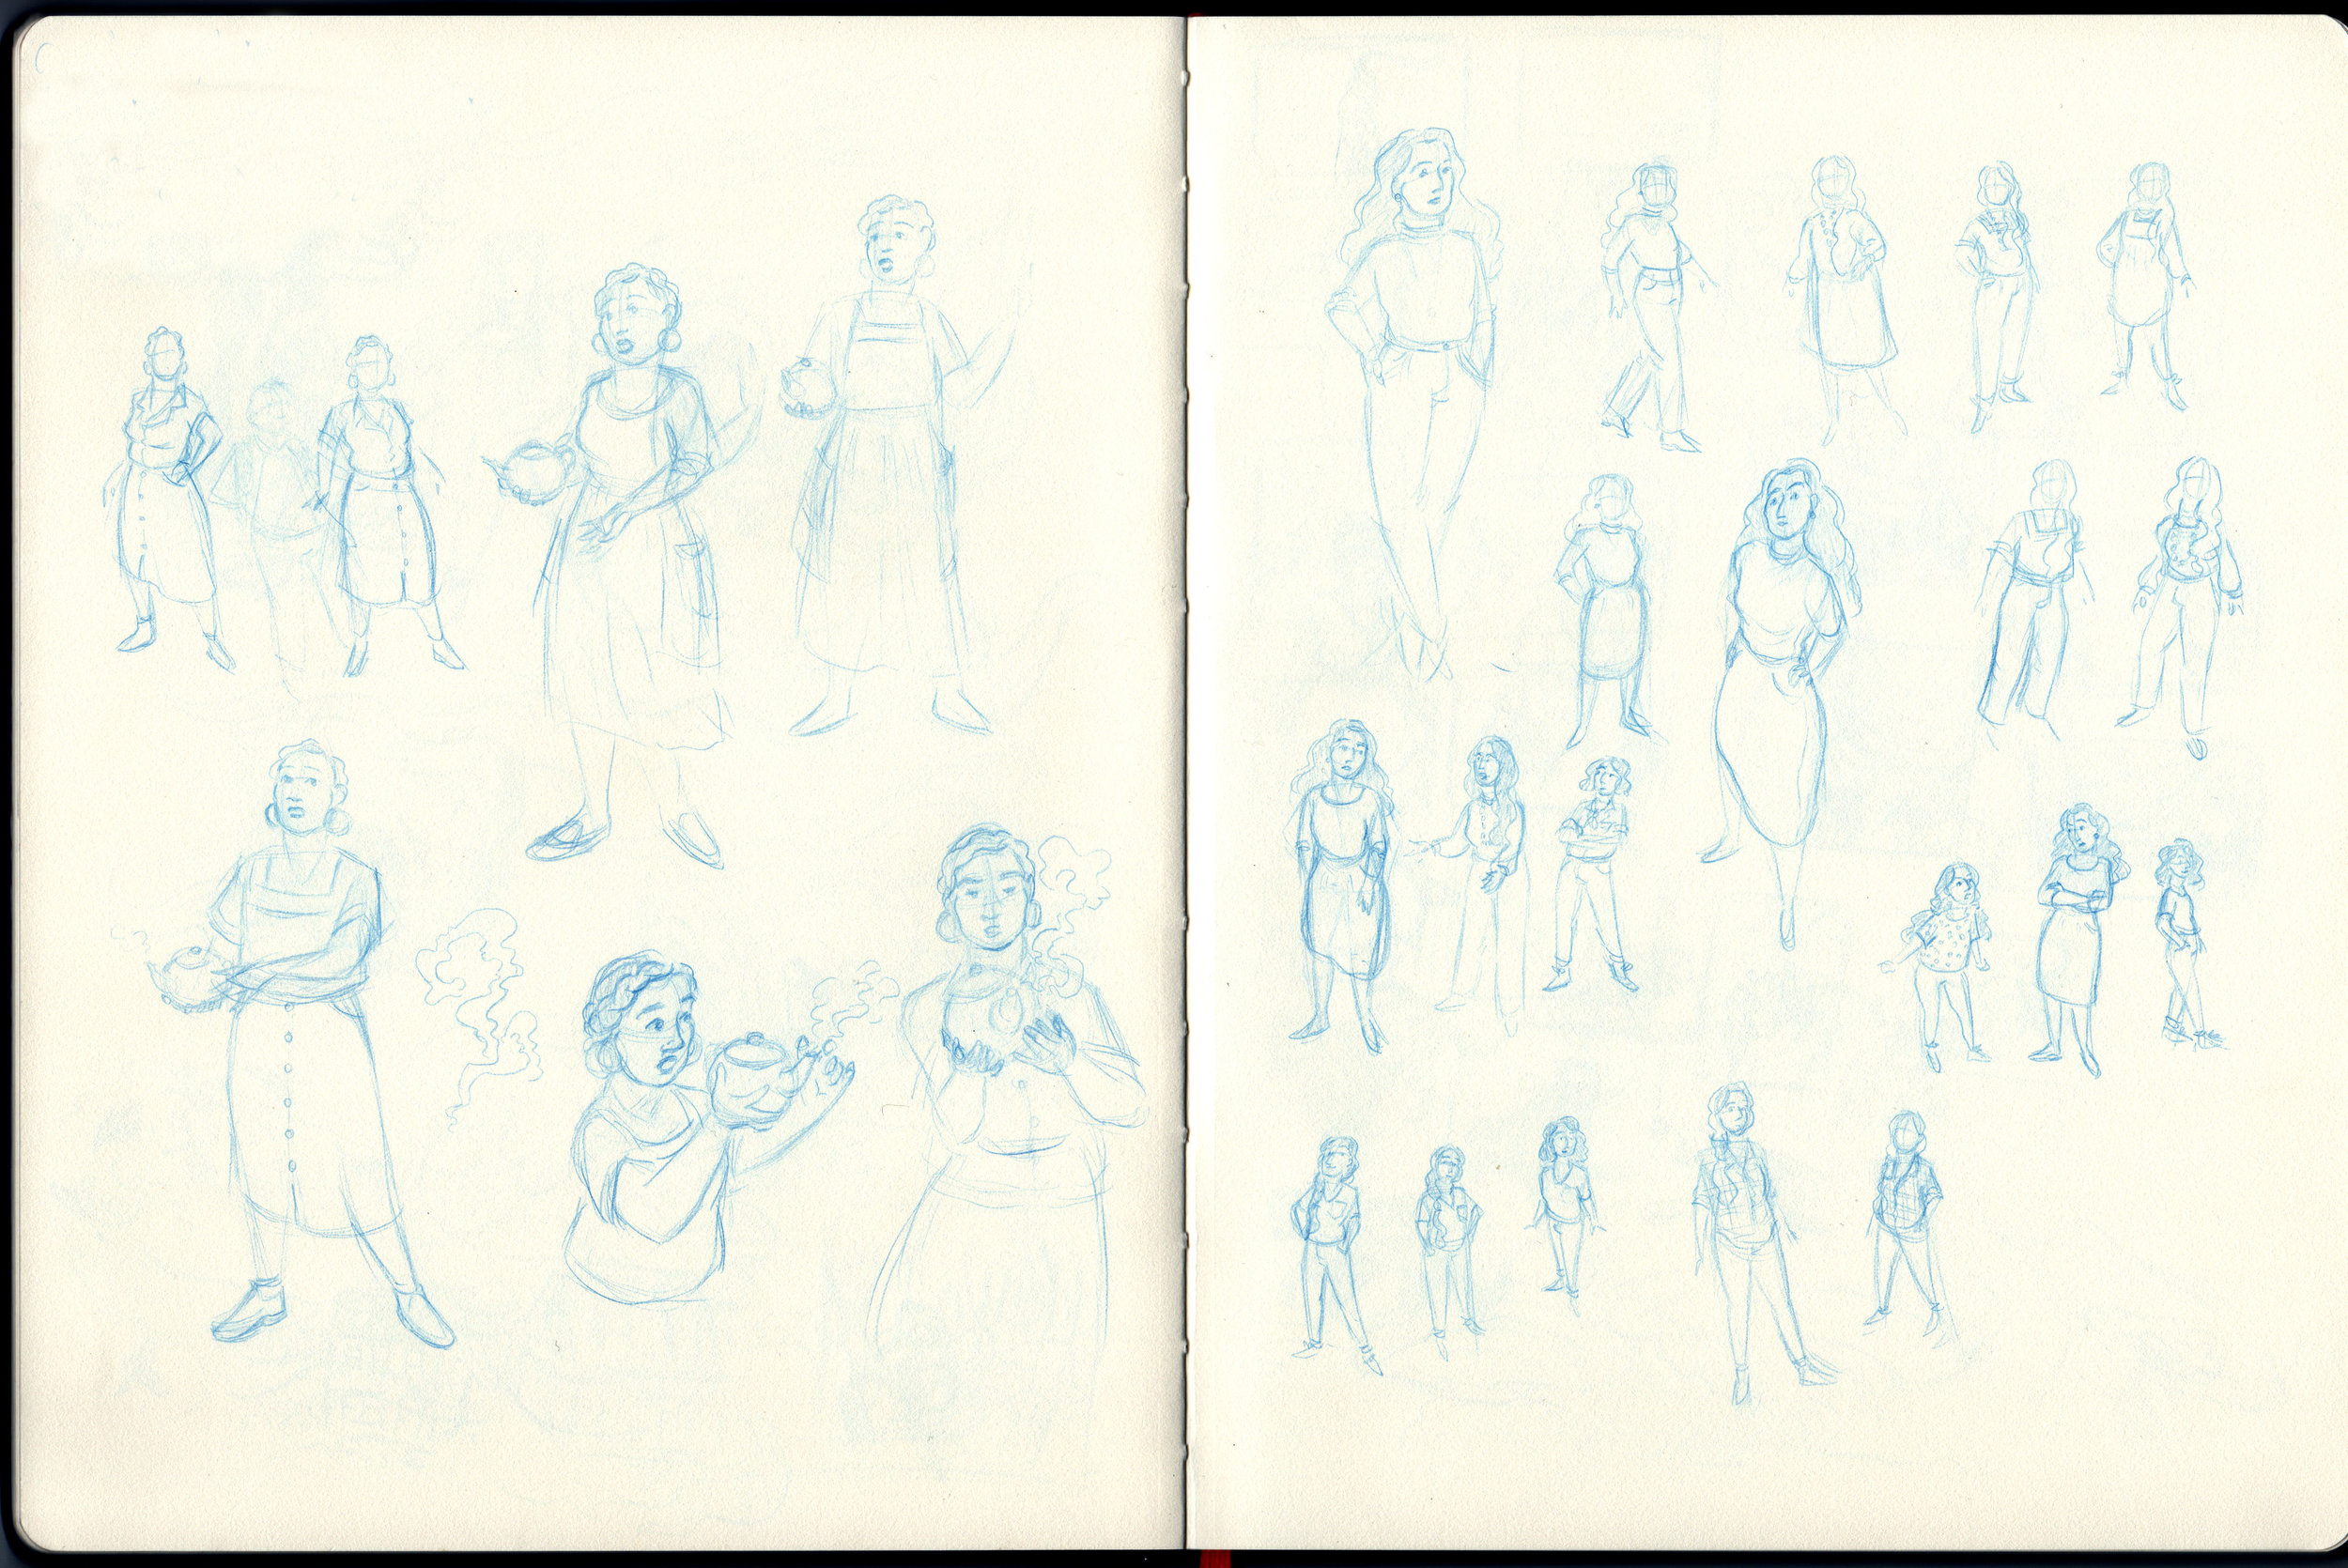 """Sample character sketches of teachers and family members from """"Hurricane Magic"""", 2019"""